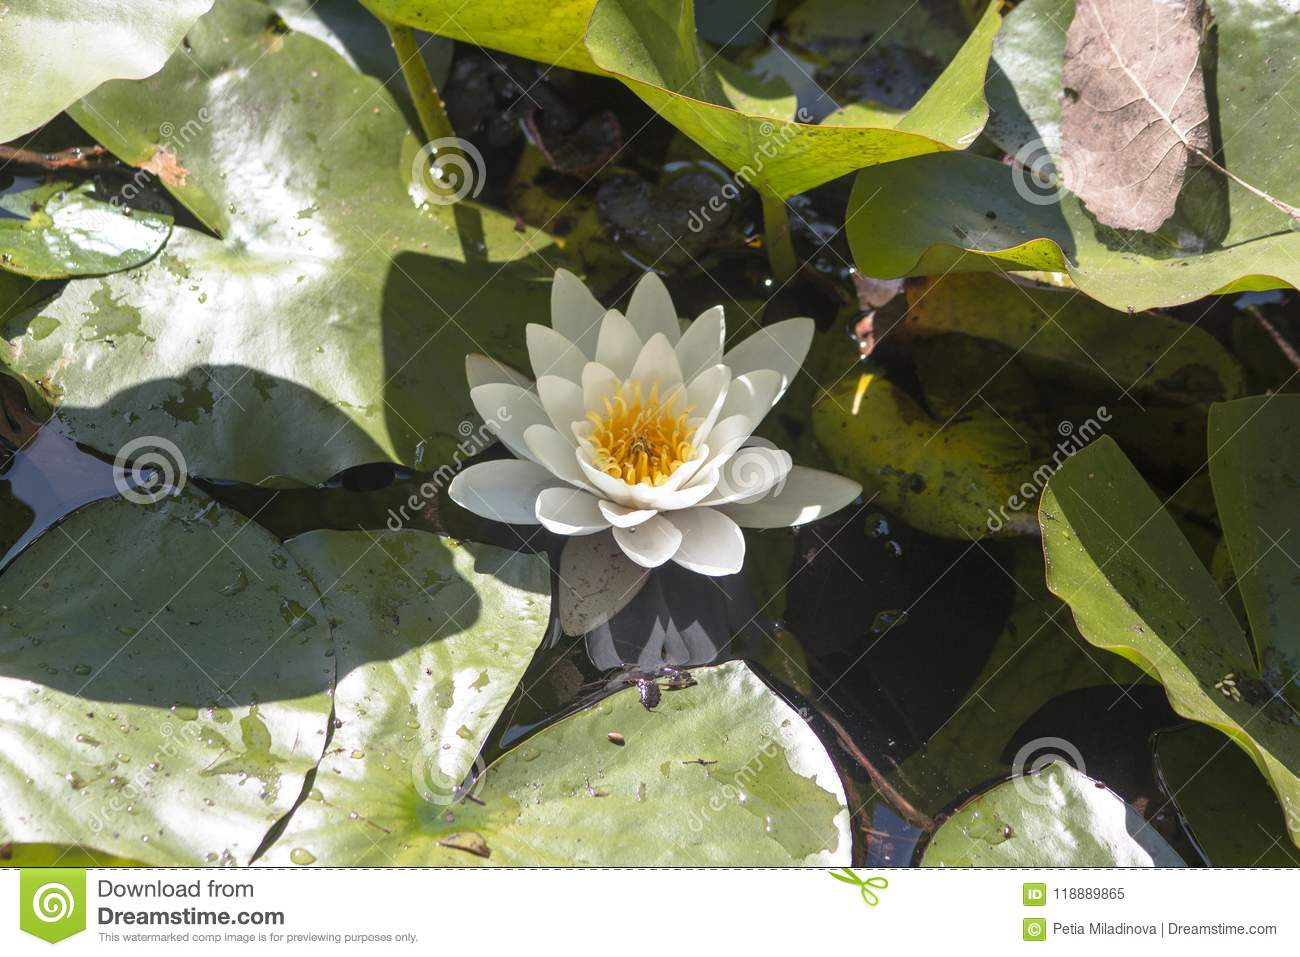 A beautiful blossoming white water rose lily nymphaeaceae stock a beautiful blossoming white water rose lily nymphaeaceae izmirmasajfo